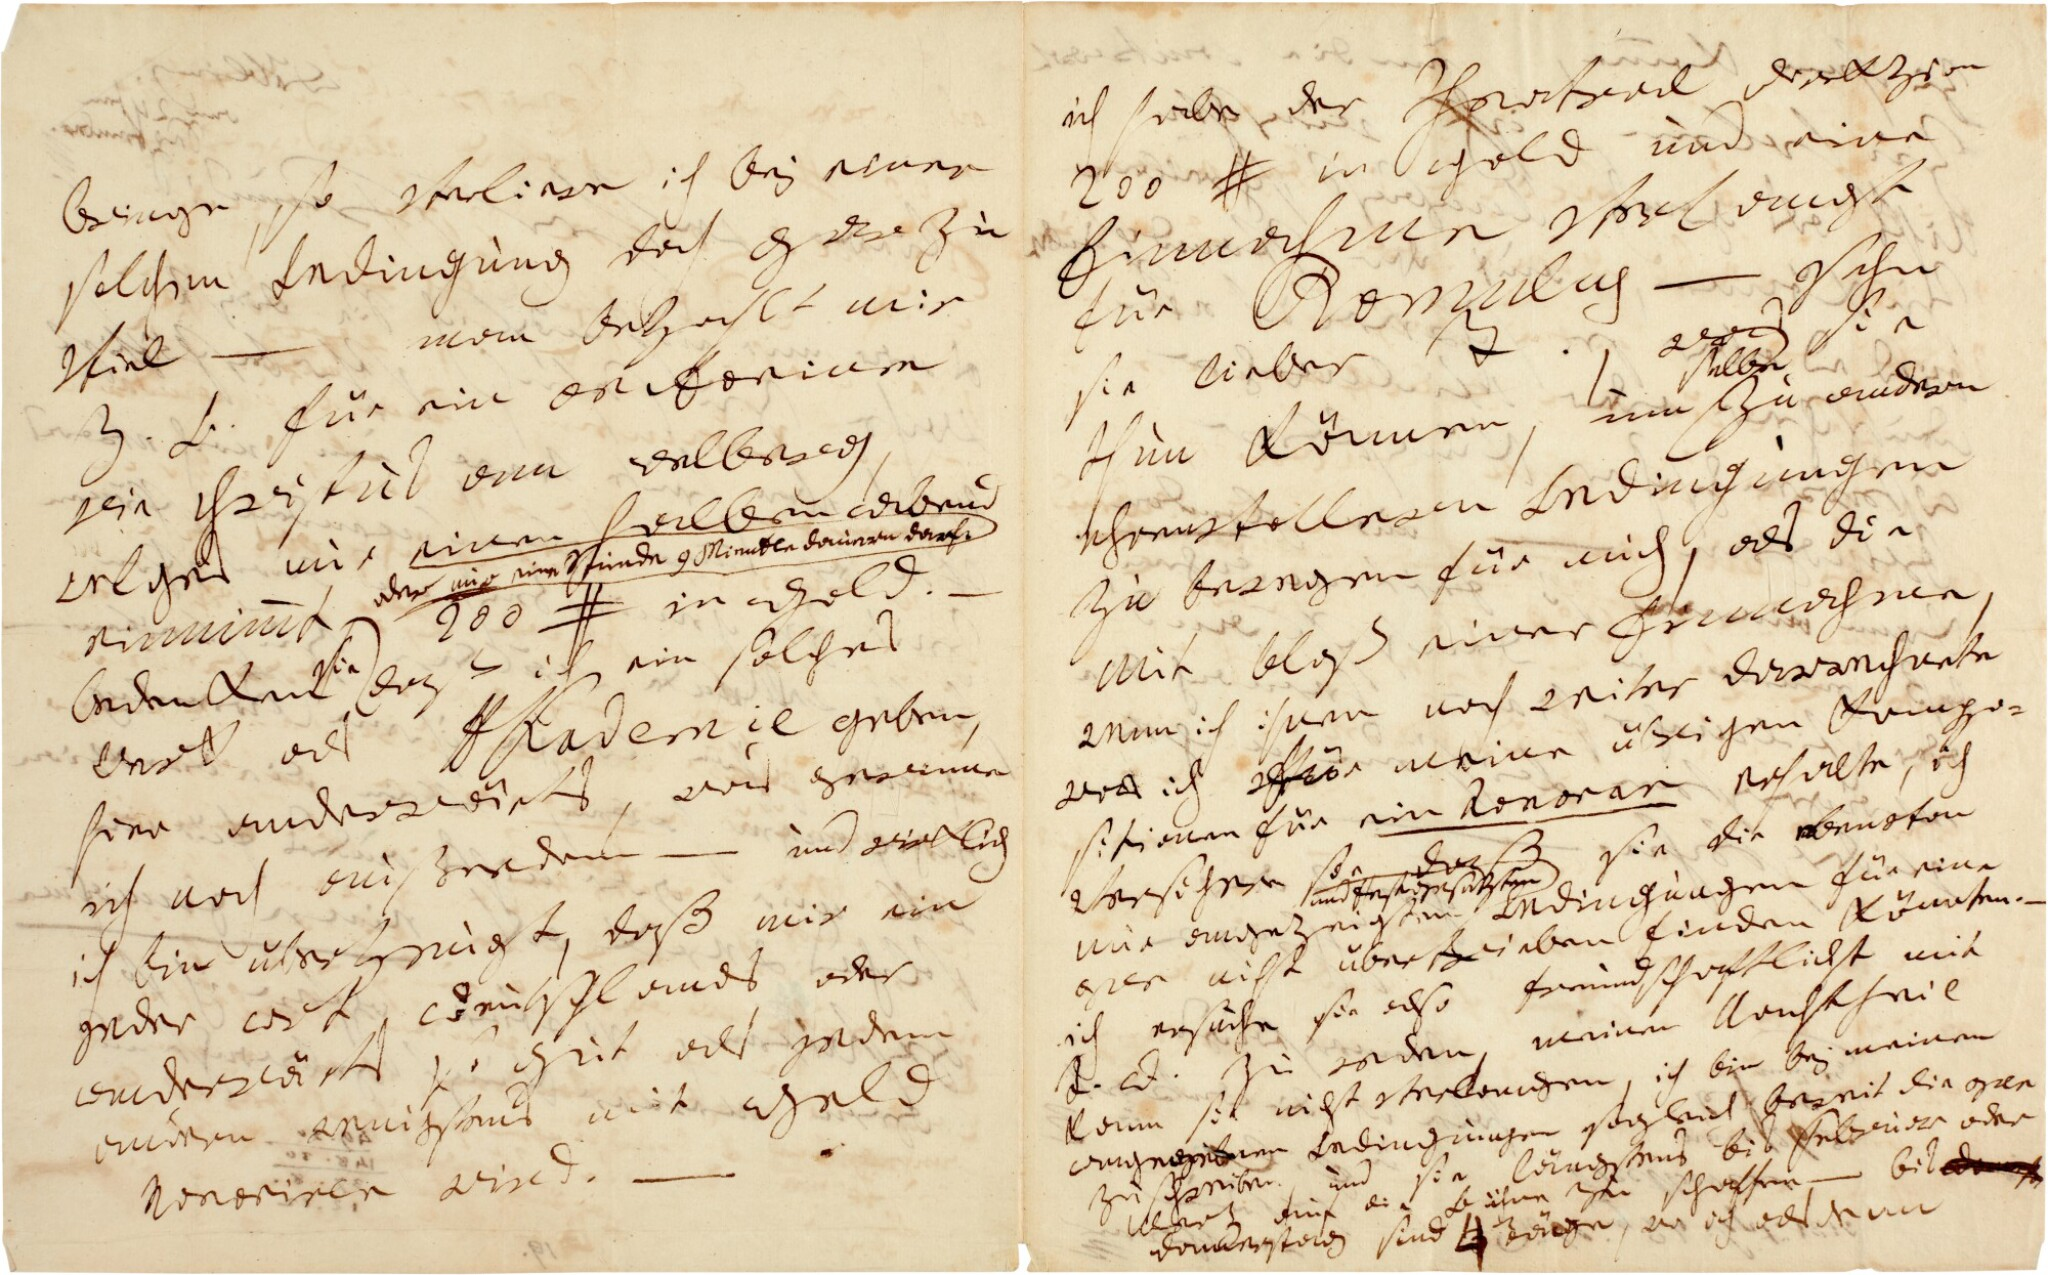 L. v. Beethoven. Fine autograph letter to his librettist Friedrich Treitschke, about their planned opera, 1815